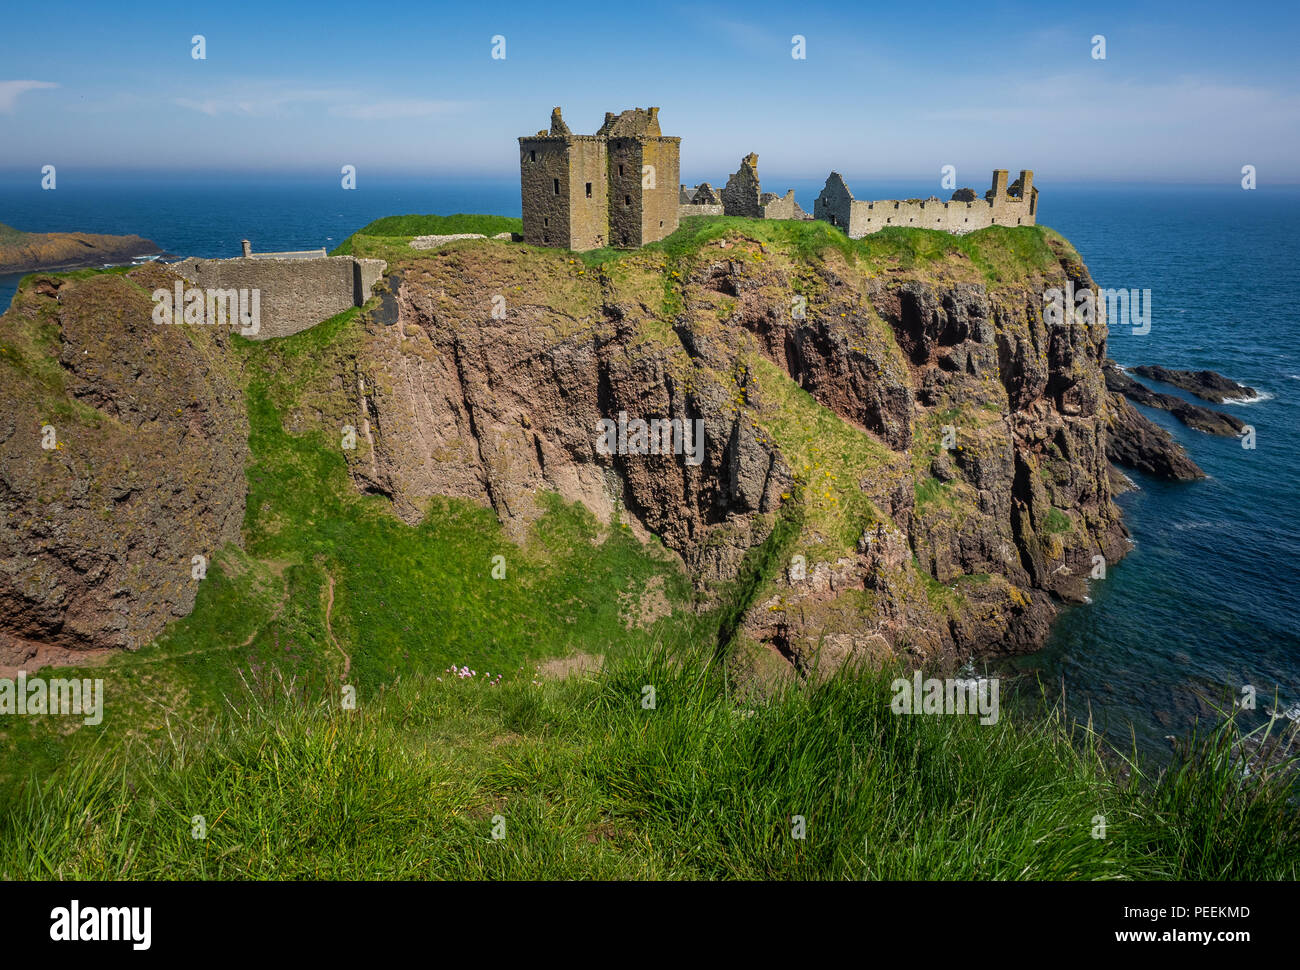 The reamins of the medieval fortress, Dunnottar Castle, located upon a rocky headland on the north-east coast of Scotland, - Stock Image